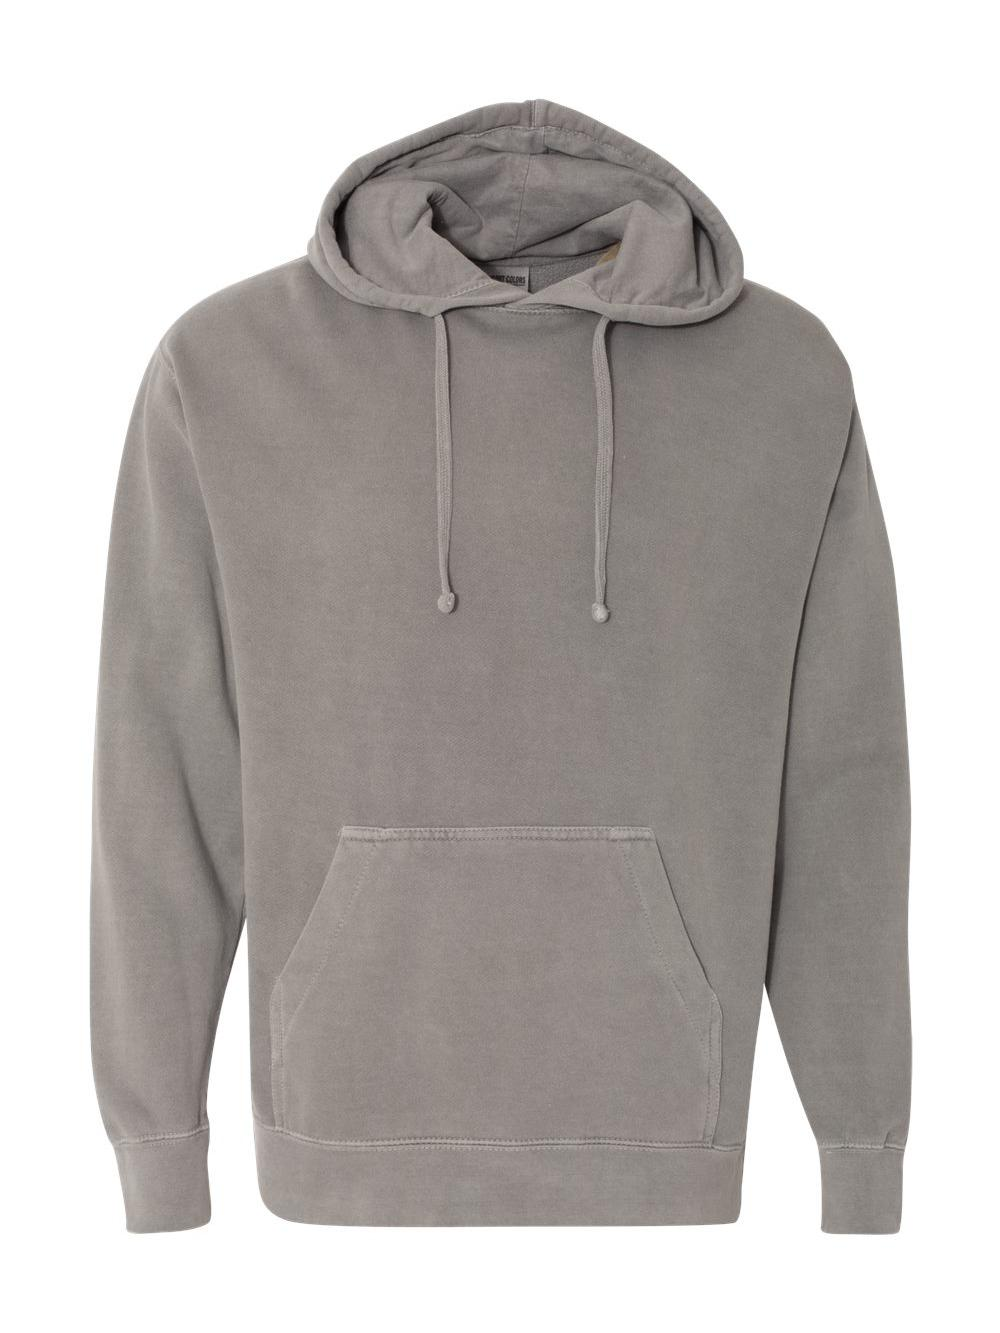 Comfort-Colors-Garment-Dyed-Hooded-Pullover-Sweatshirt-1567 thumbnail 18